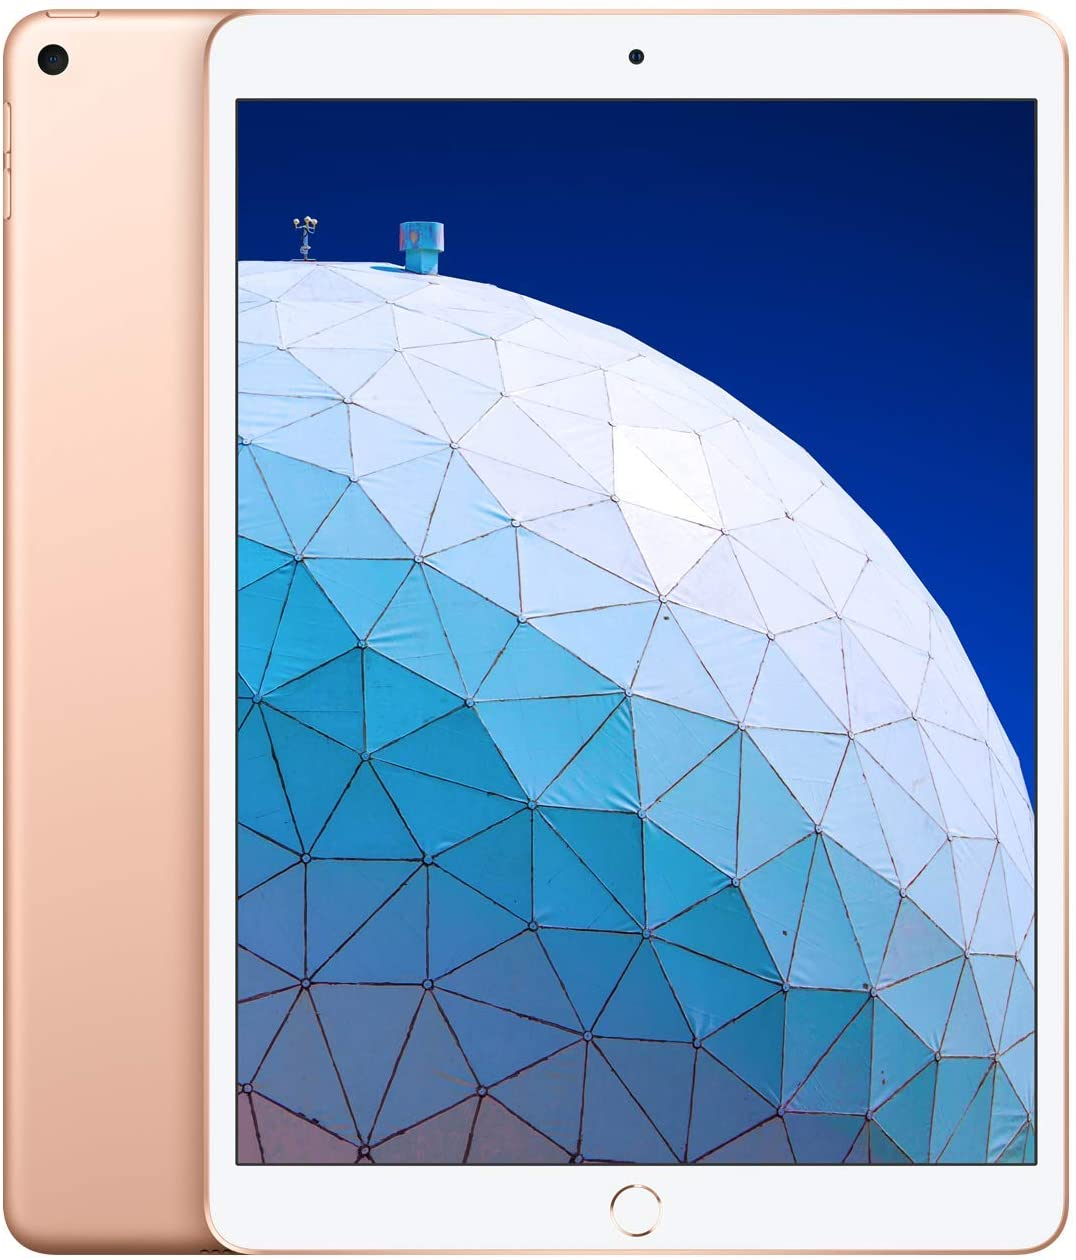 Apple iPad Air (10.5-inch, Wi-Fi, 64GB) - Gold (3rd Generation)